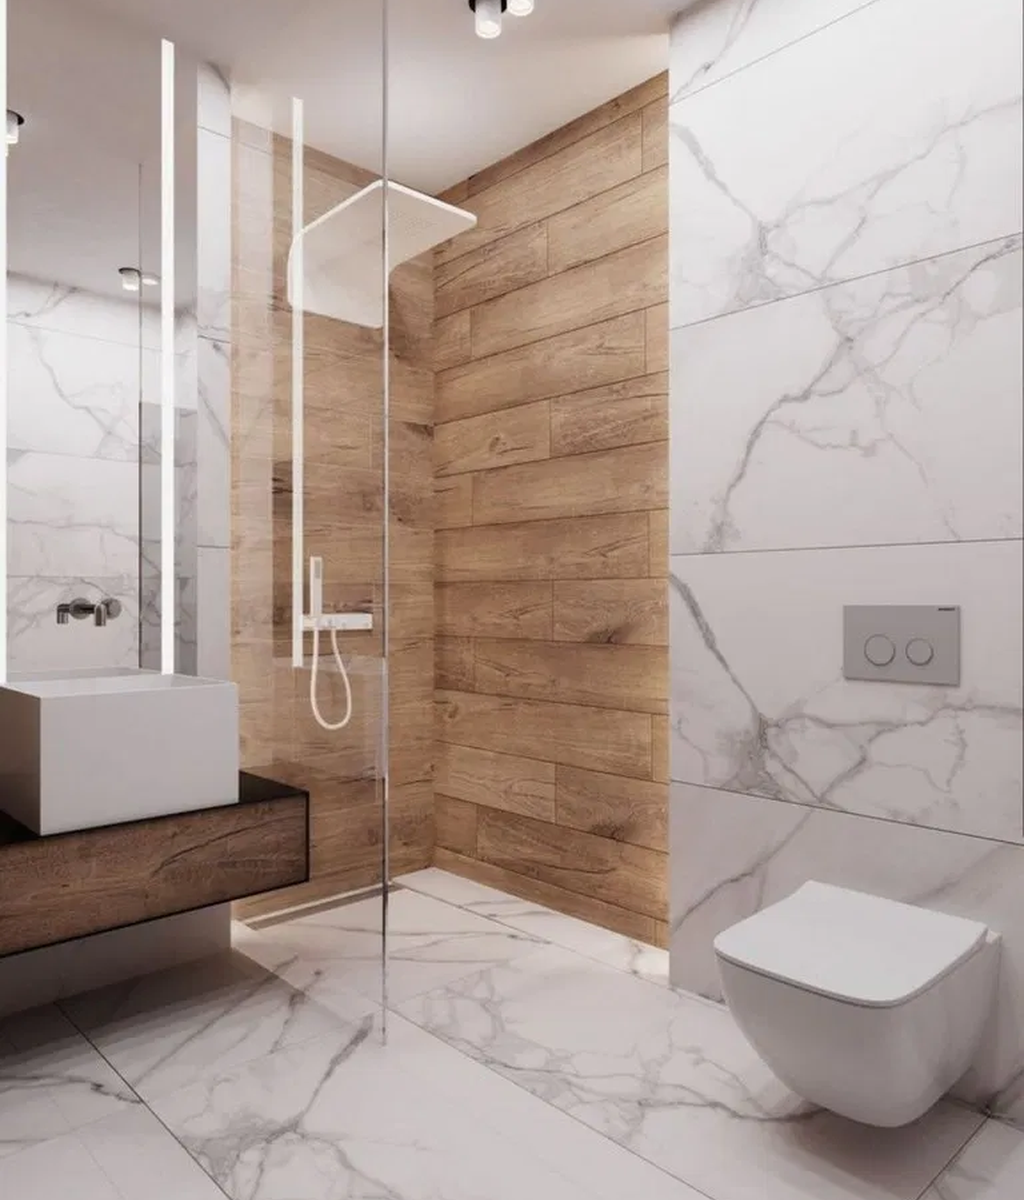 Fascinating Minimalist Bathroom Decoration Ideas 21